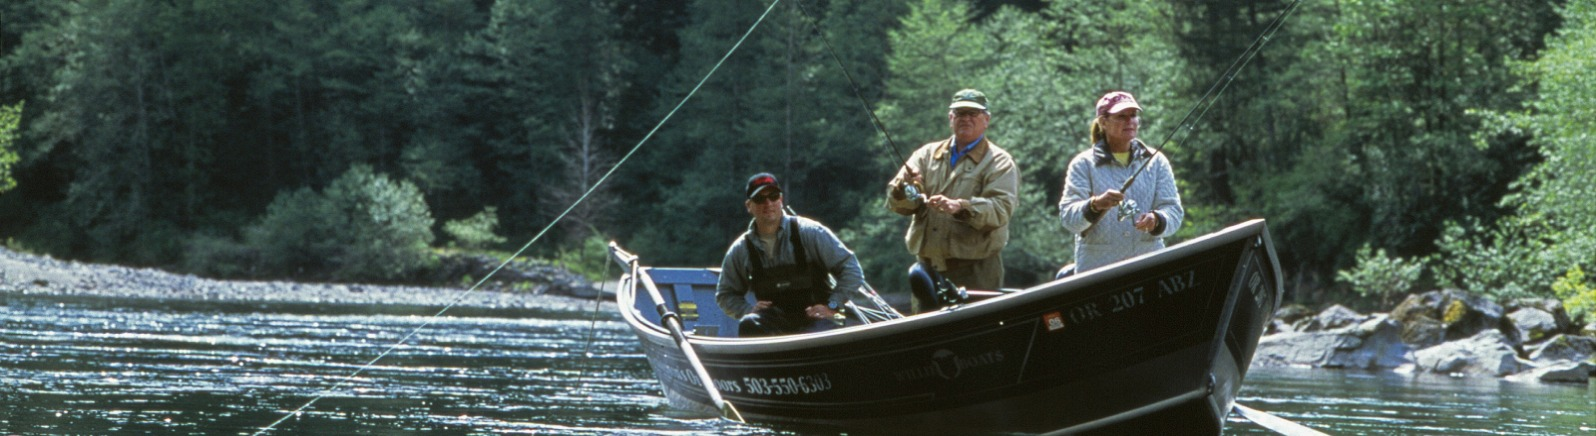 Guided fishing trip in Mt. Hood